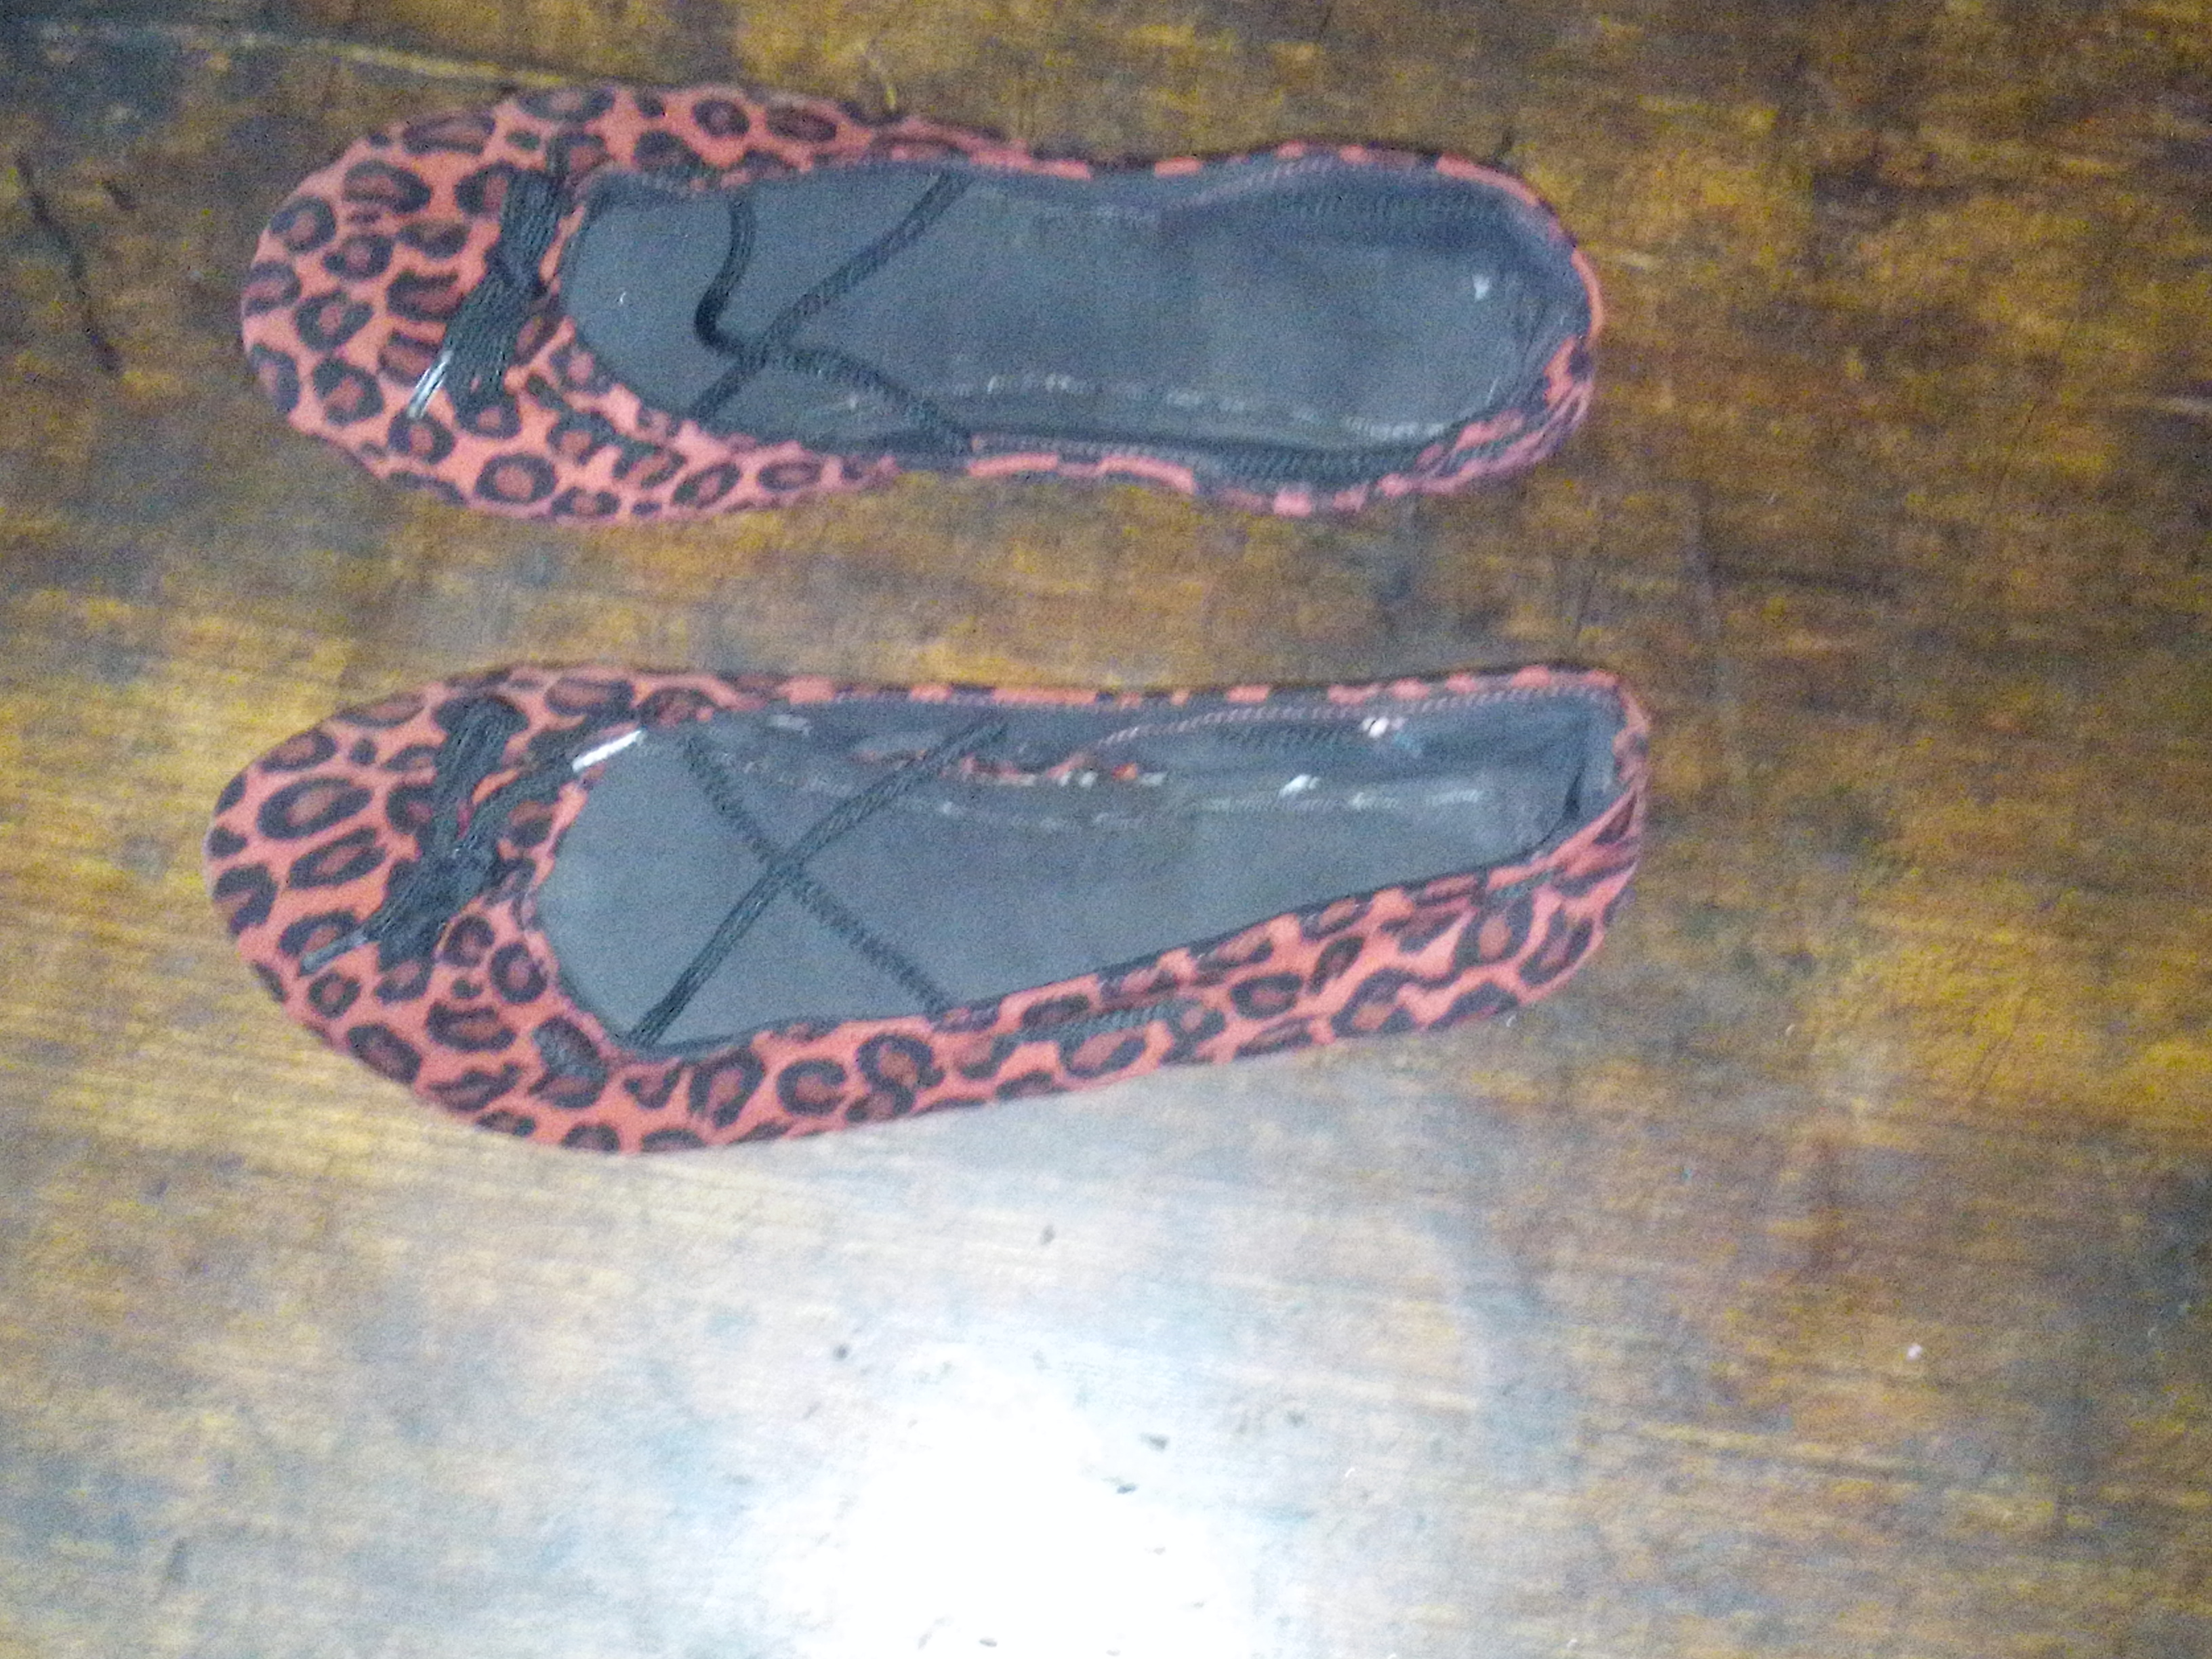 Ballet slippers - made by me...